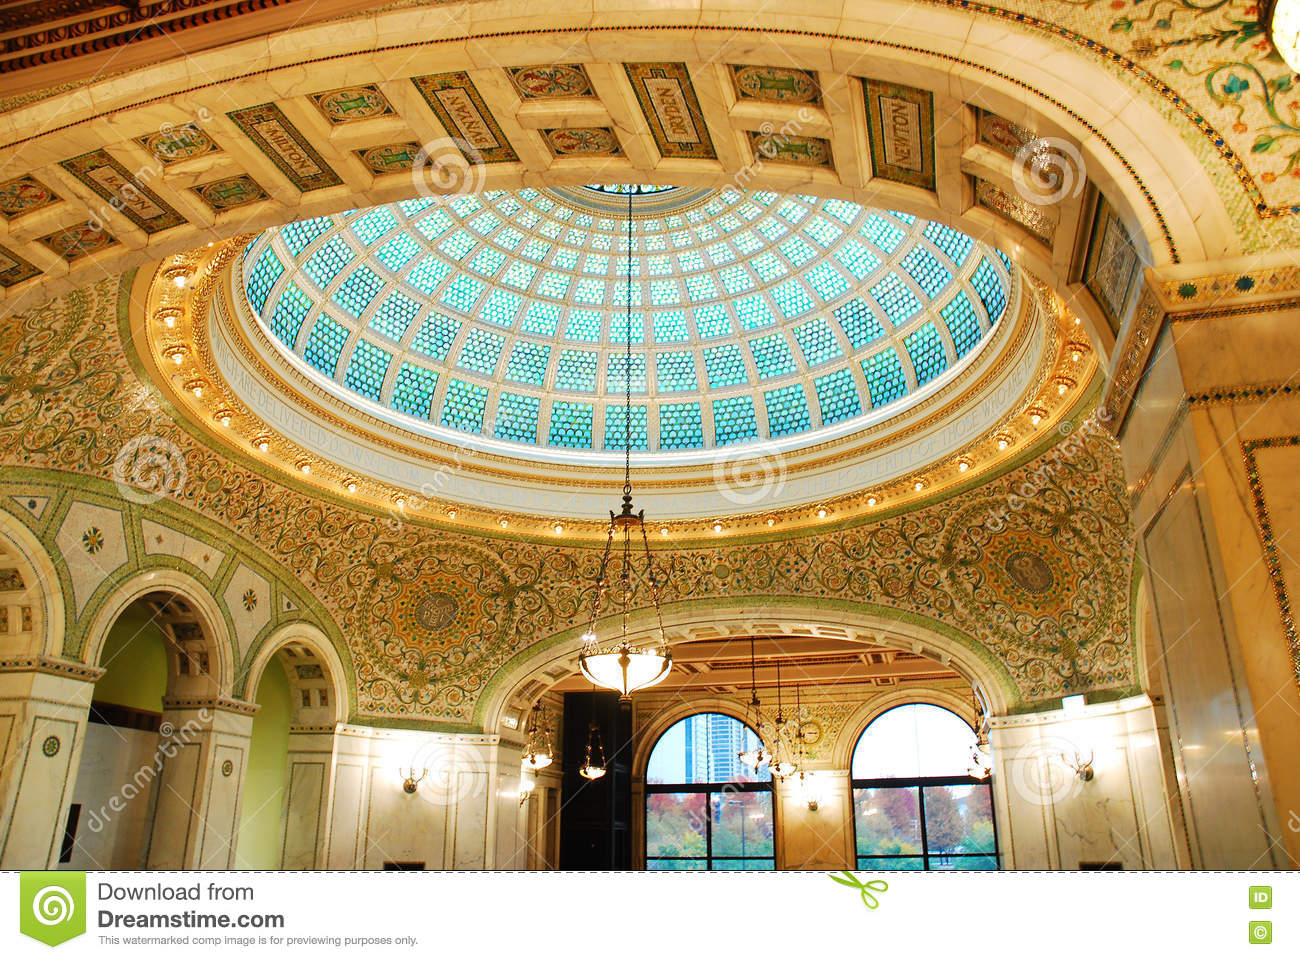 The Tiffany Ceiling of the Chicago Cultural Center